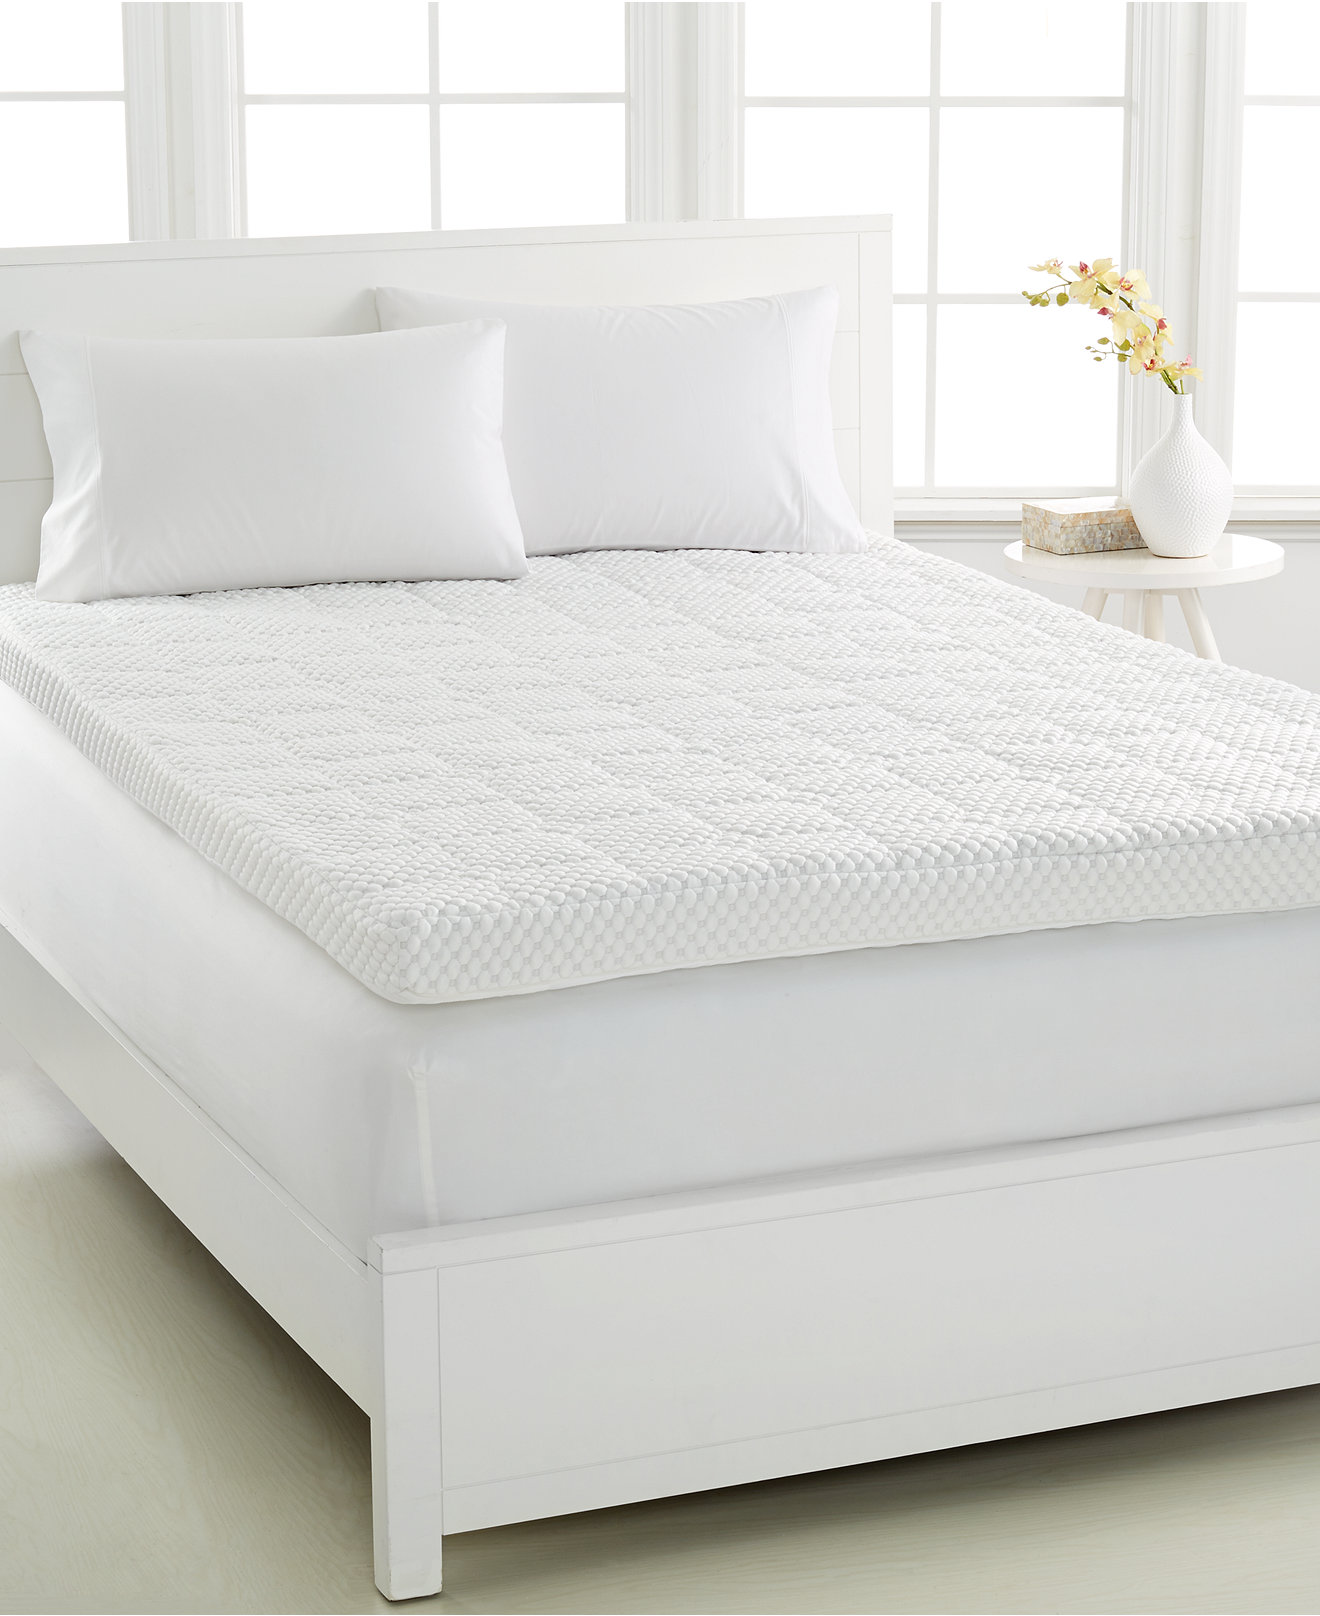 Dream Science 4'' Memory Foam Mattress Toppers, VentTech Ventilated Foam,